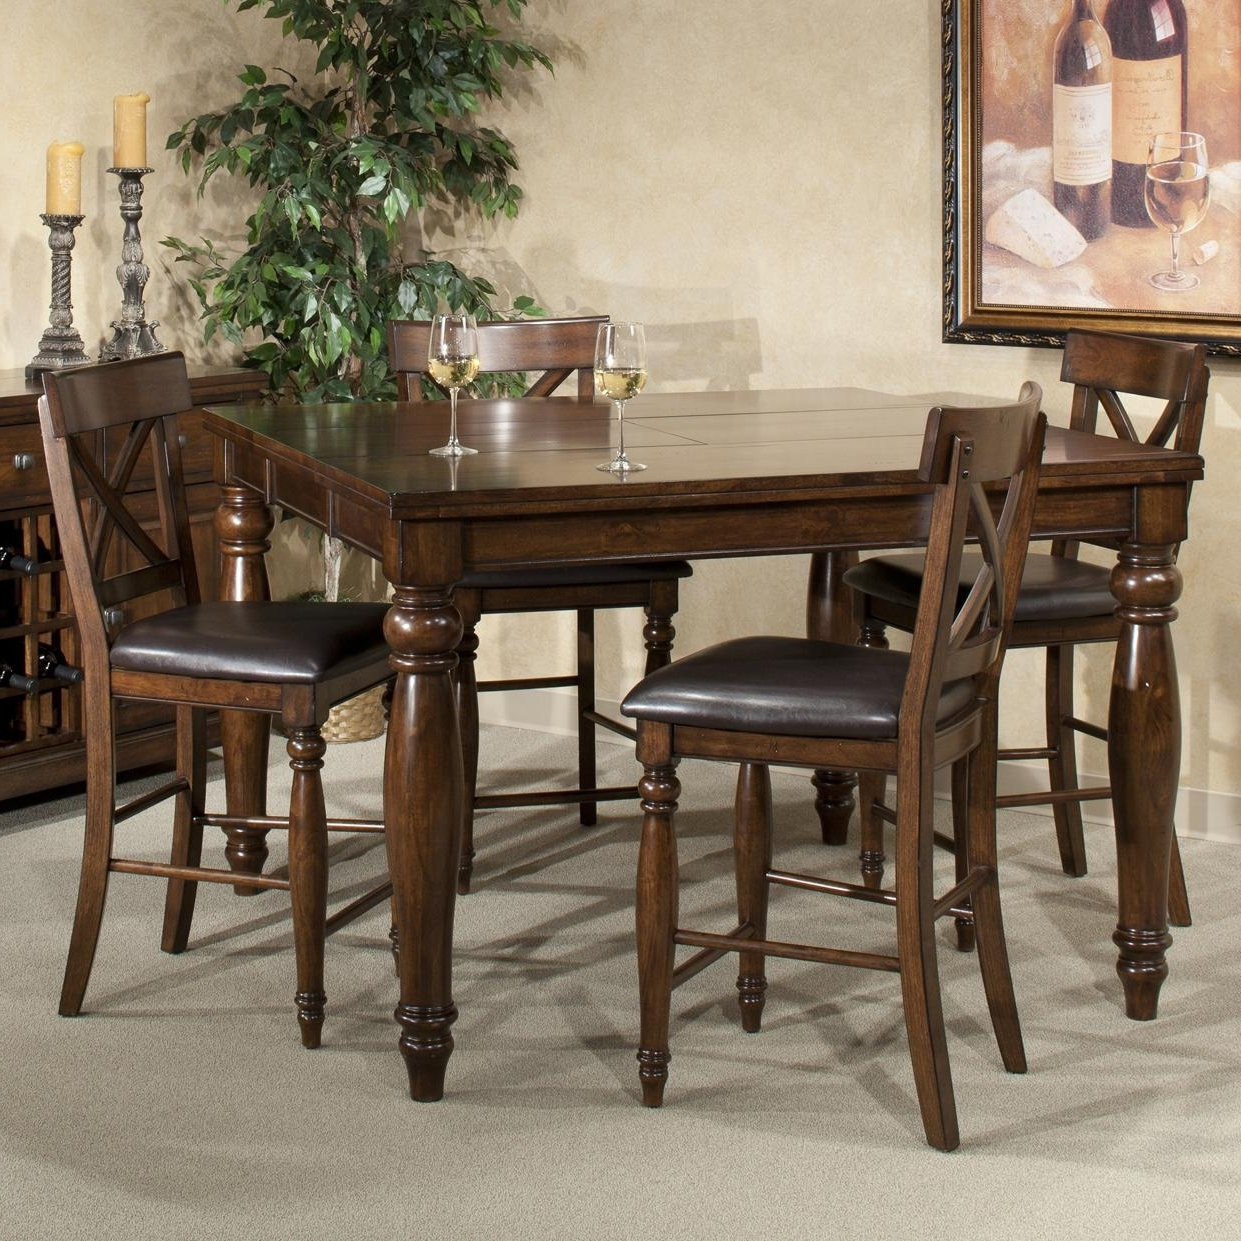 Intercon Kingston Five Piece Gathering Table And Stool Set Throughout Preferred Kingston Dining Tables And Chairs (View 18 of 25)